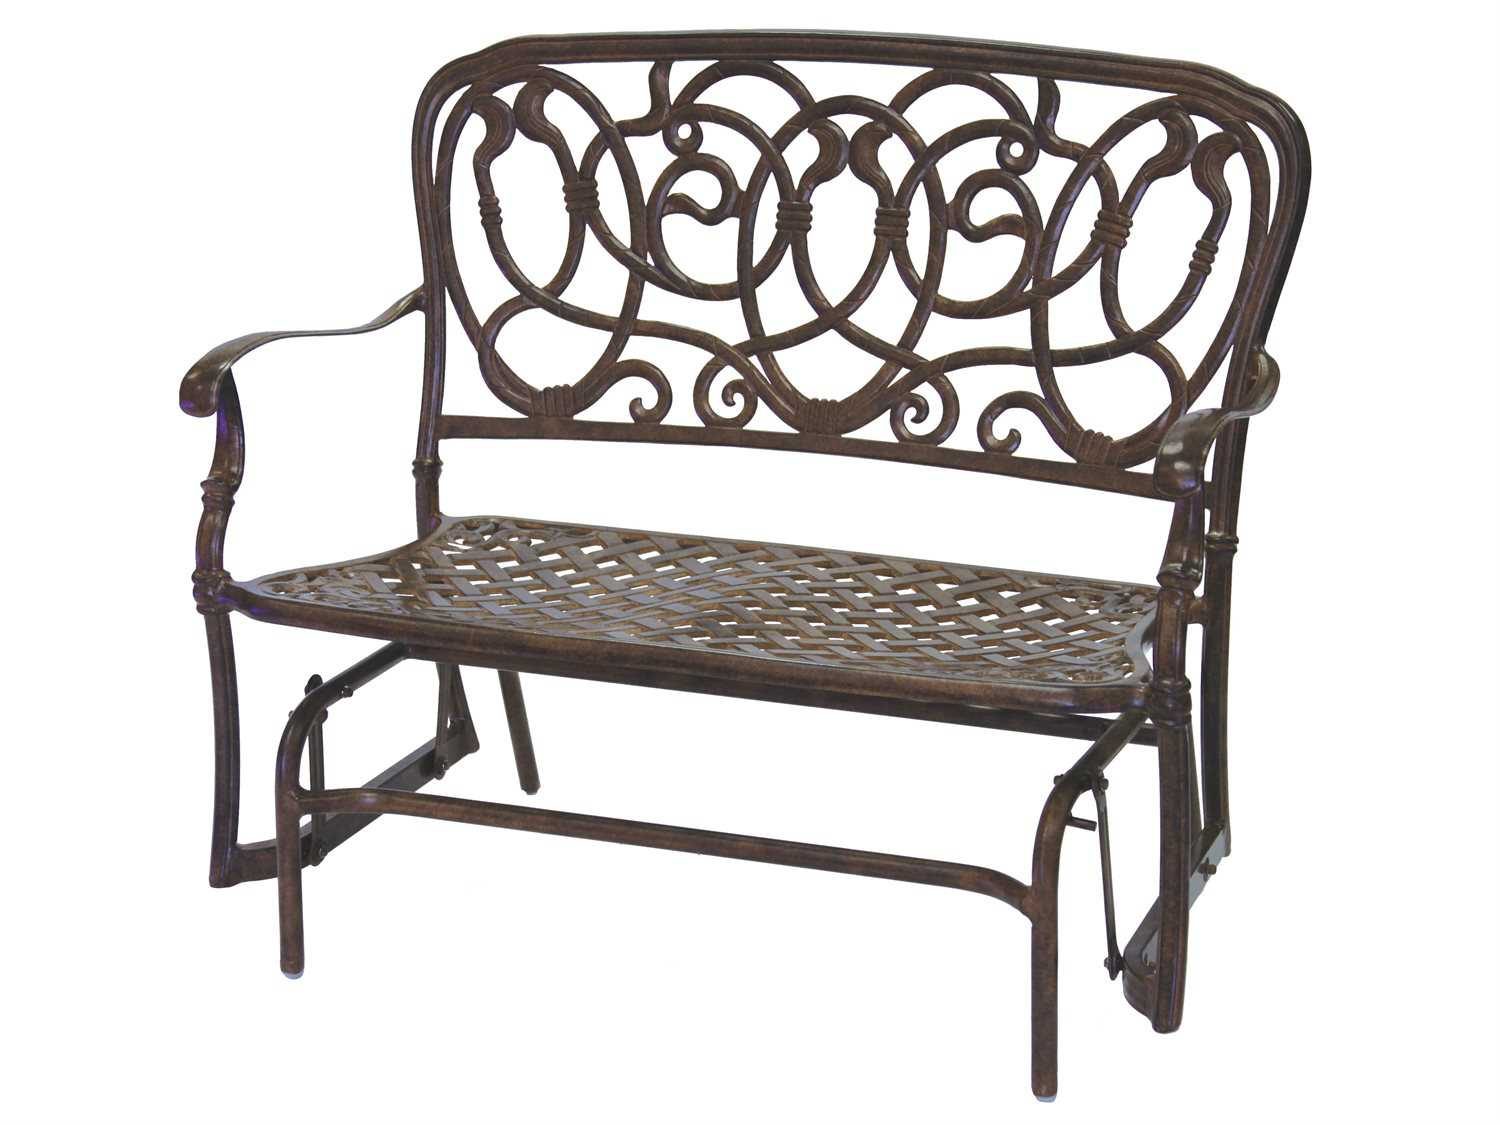 Darlee Outdoor Living Standard Florence Replacement Bench